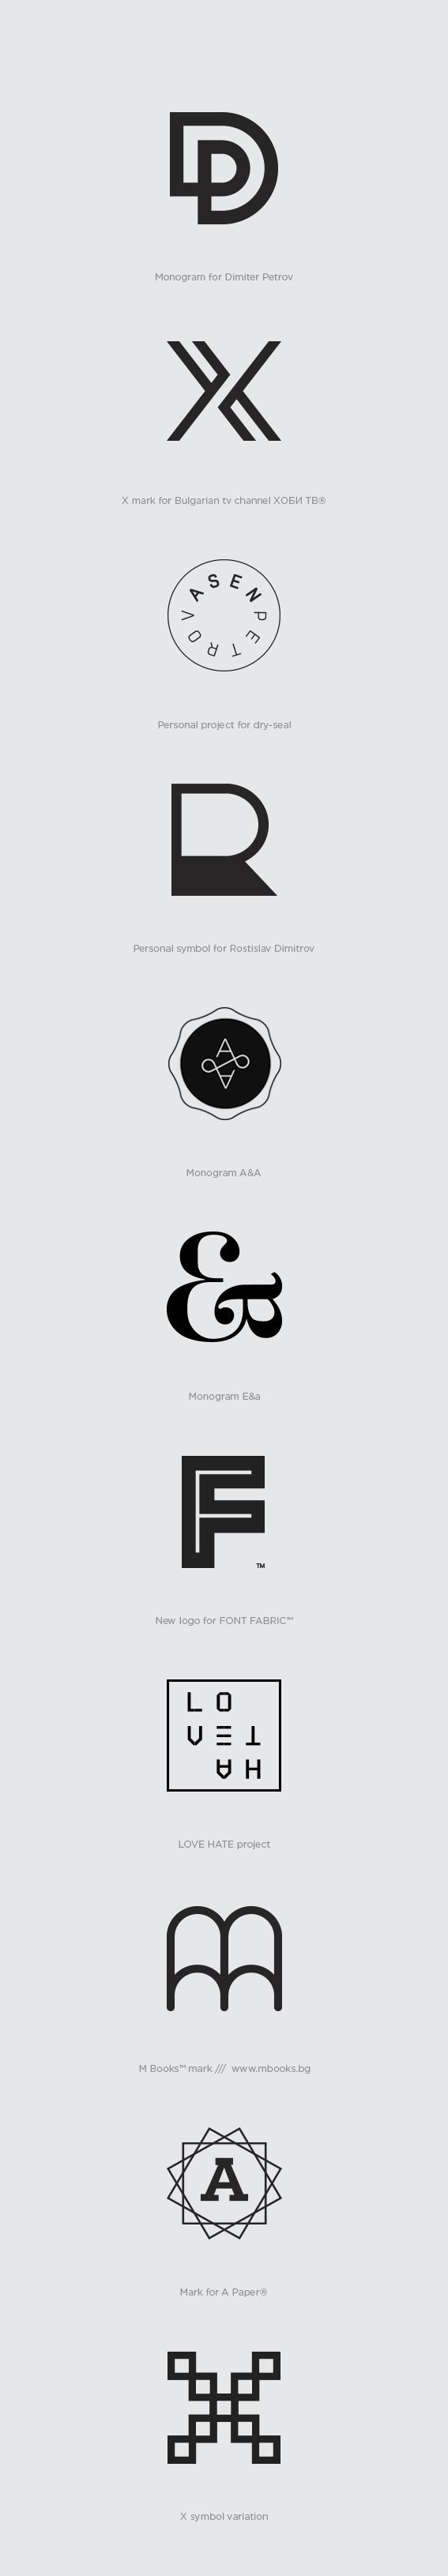 Marks_ by Asen Petrov, via Behance